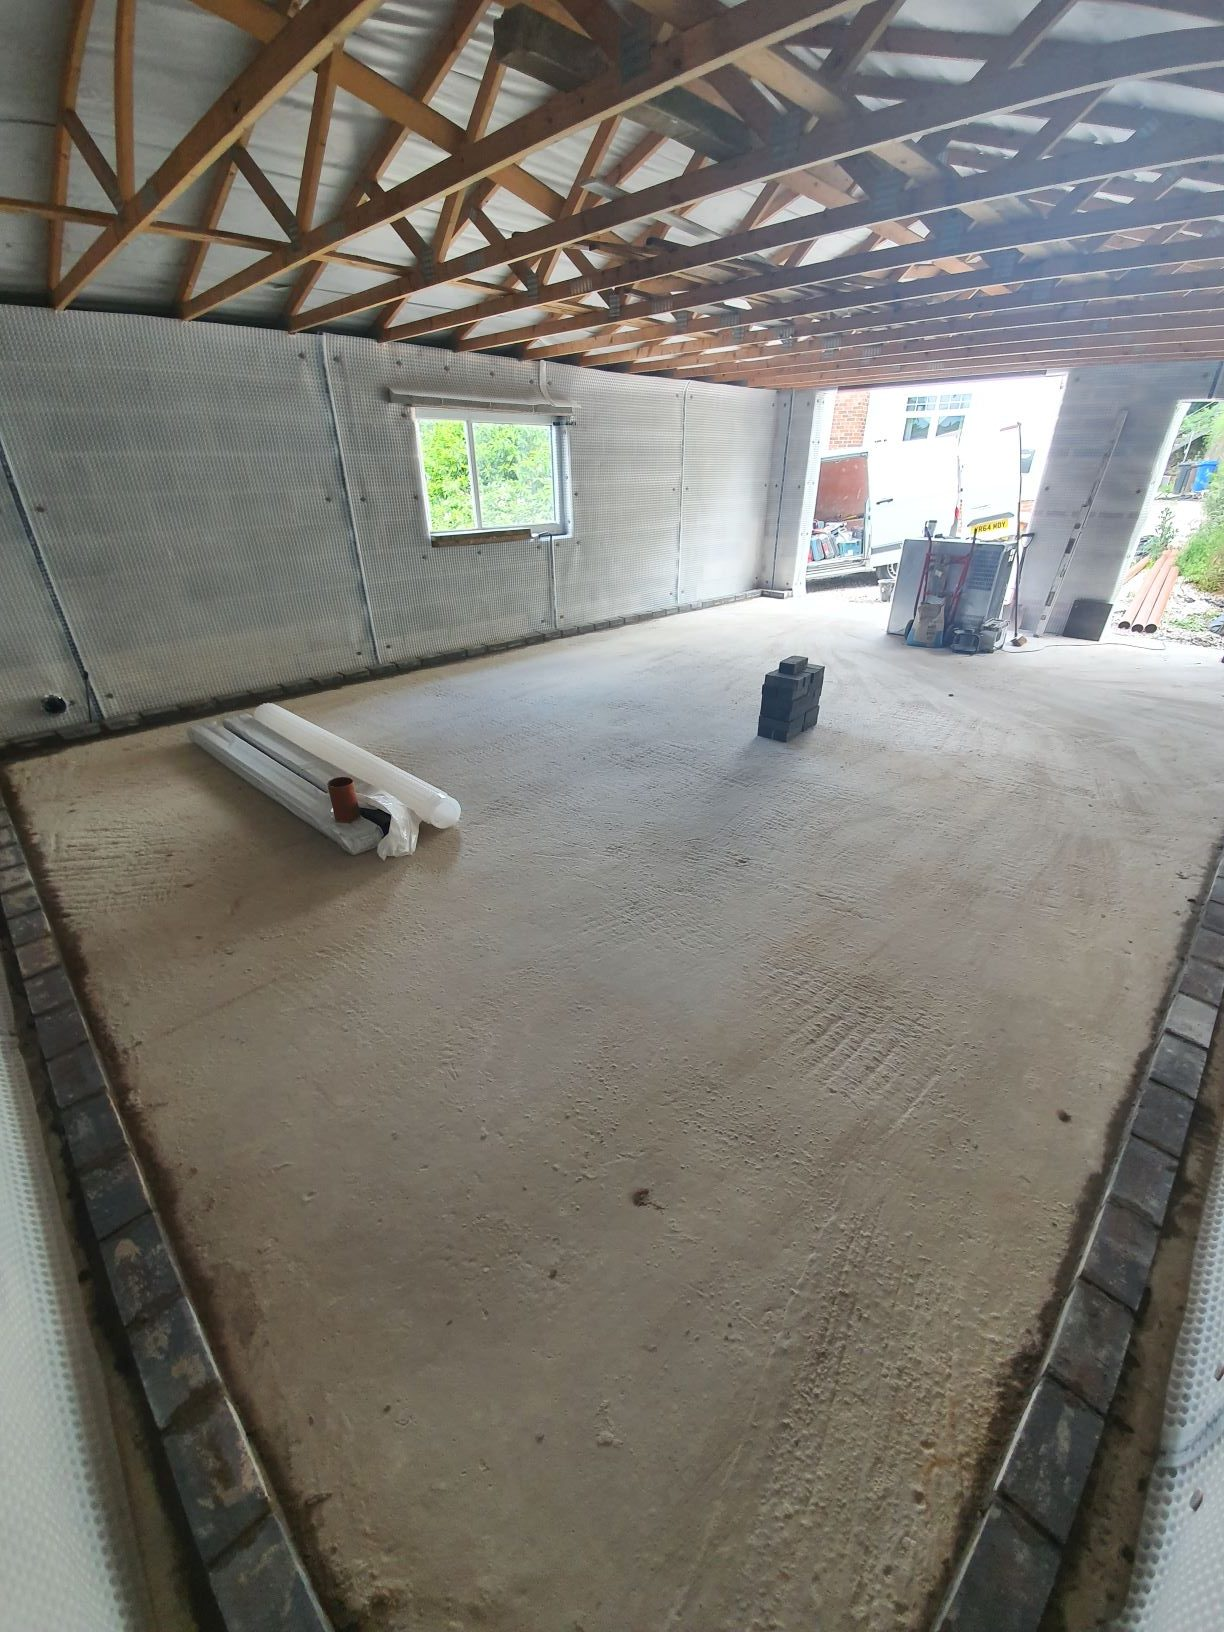 Basement garage converted to habitable space